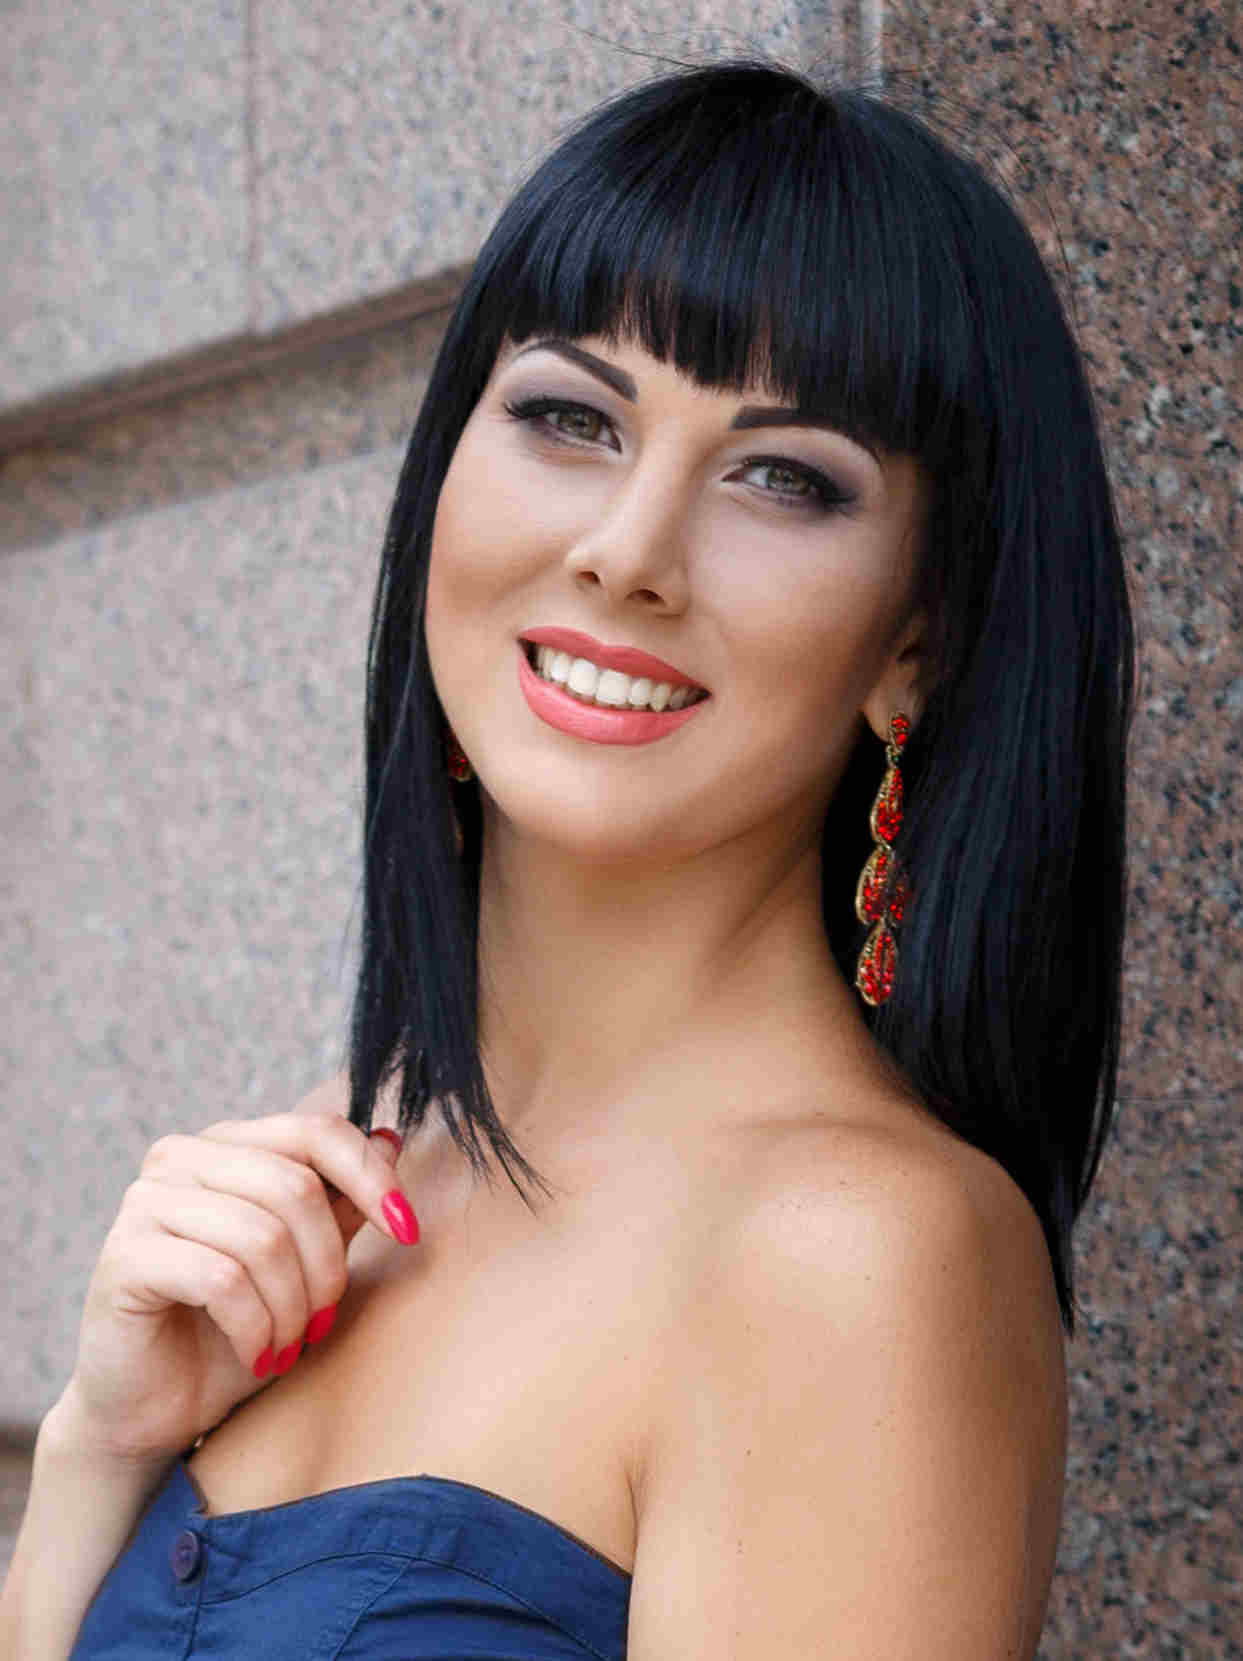 christian ukrainian dating Ukraine christian brides: the first thing you need to do is forget about all the sites with just model looking women, who have just walked off the catwalk, you can be sure they will be fake women along with a scam site that will probably charge you a huge amount of money for opening mails from women.